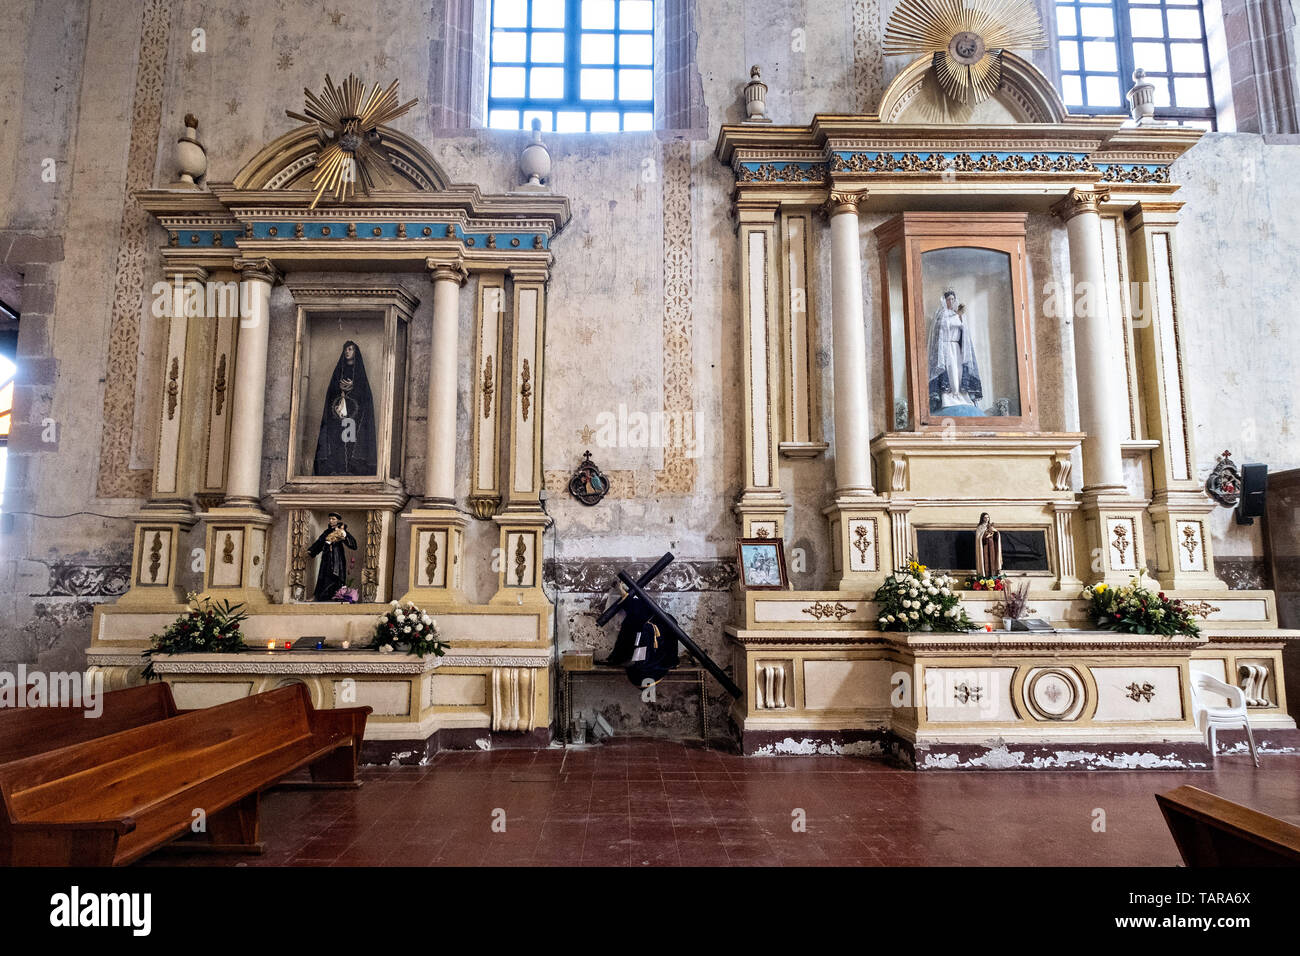 Interior of the San Nicolas Tolentino Temple and Ex-Monastery in Actopan, Hidalgo, Mexico. The colonial church and convent  was built in 1546 and combine architectural elements from the romantic, gothic and renaissance periods. Stock Photo